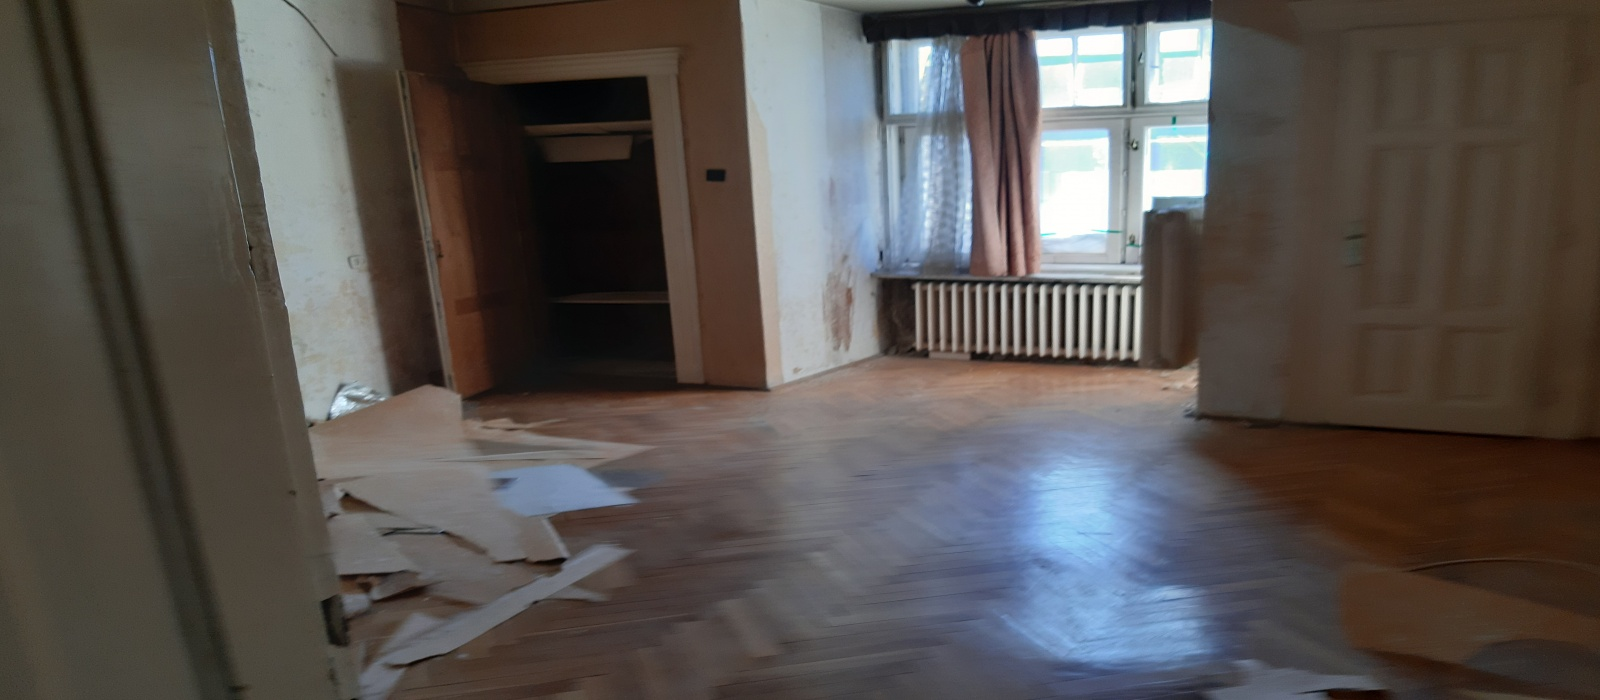 Hungary,2 Bedrooms Bedrooms,3 Rooms Rooms,1 BathroomBathrooms,Apartment,5,1339